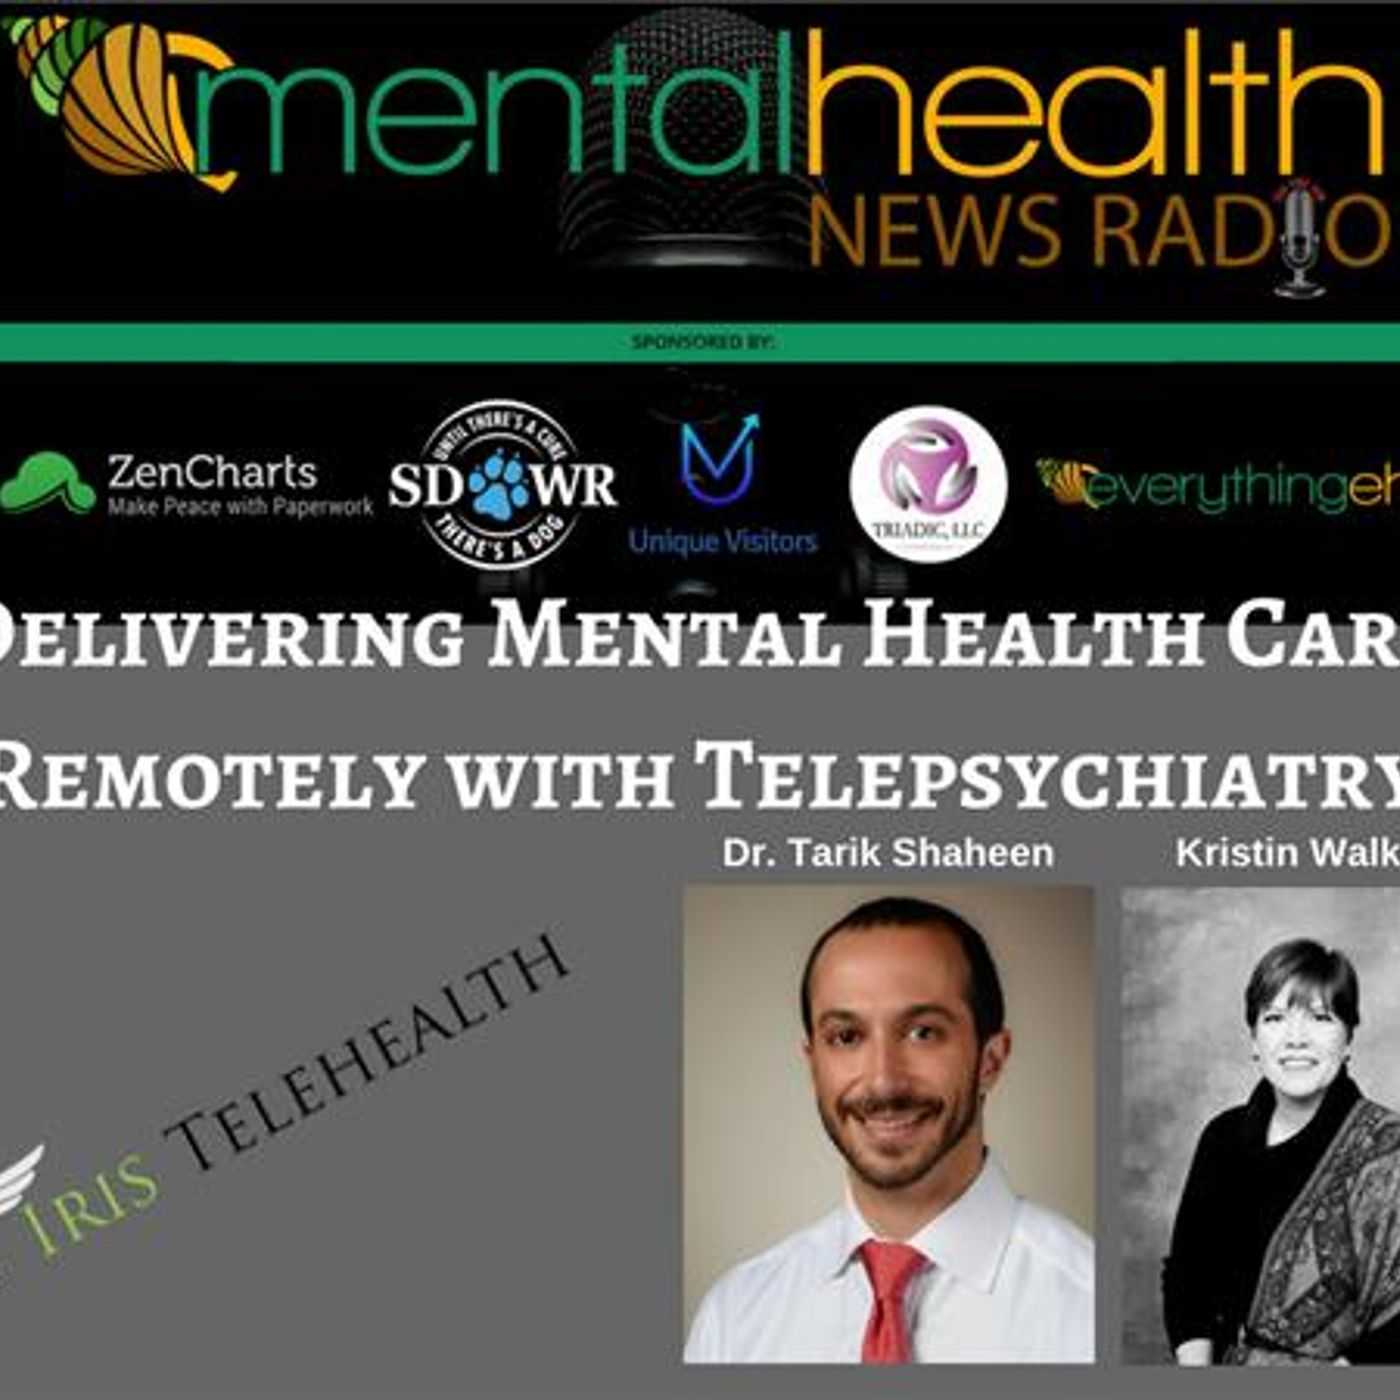 Mental Health News Radio - Delivering Mental Health Care Remotely with Telepsychiatry: Dr. Tarik Shaheen